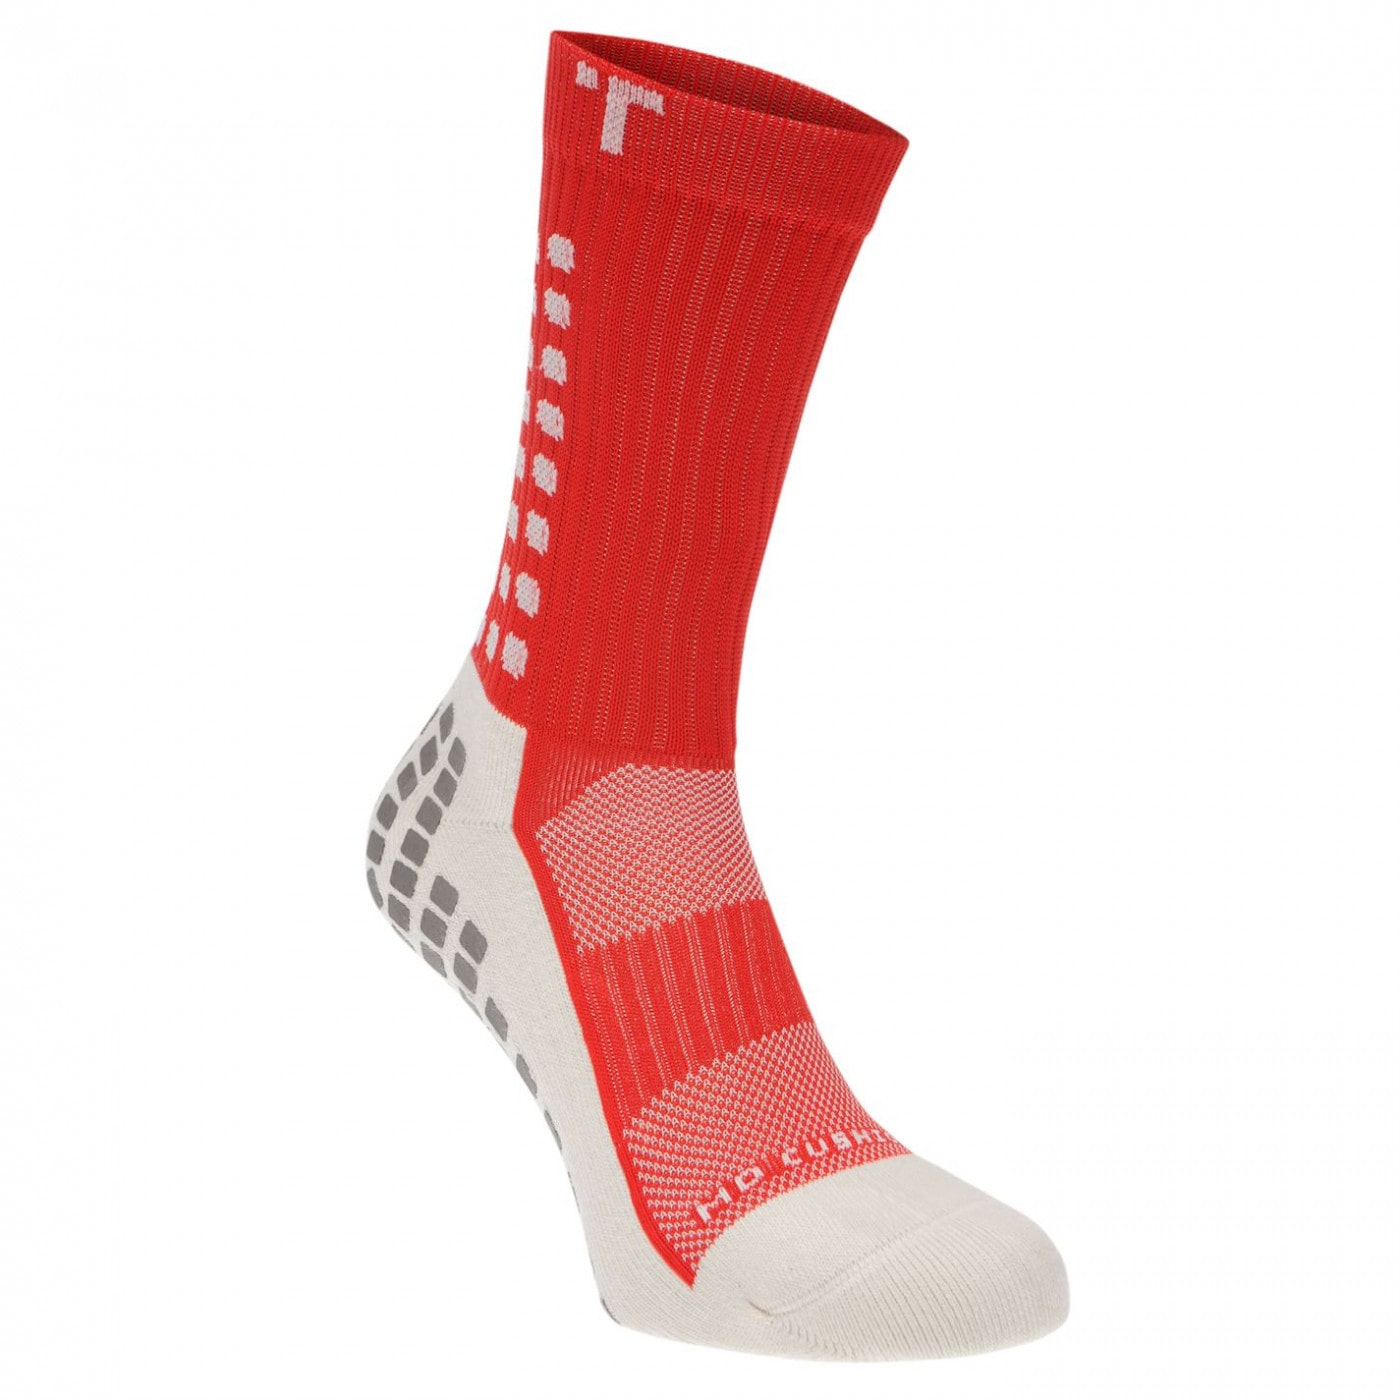 Trusox Mid Calf Cushion Crew Socks Mens